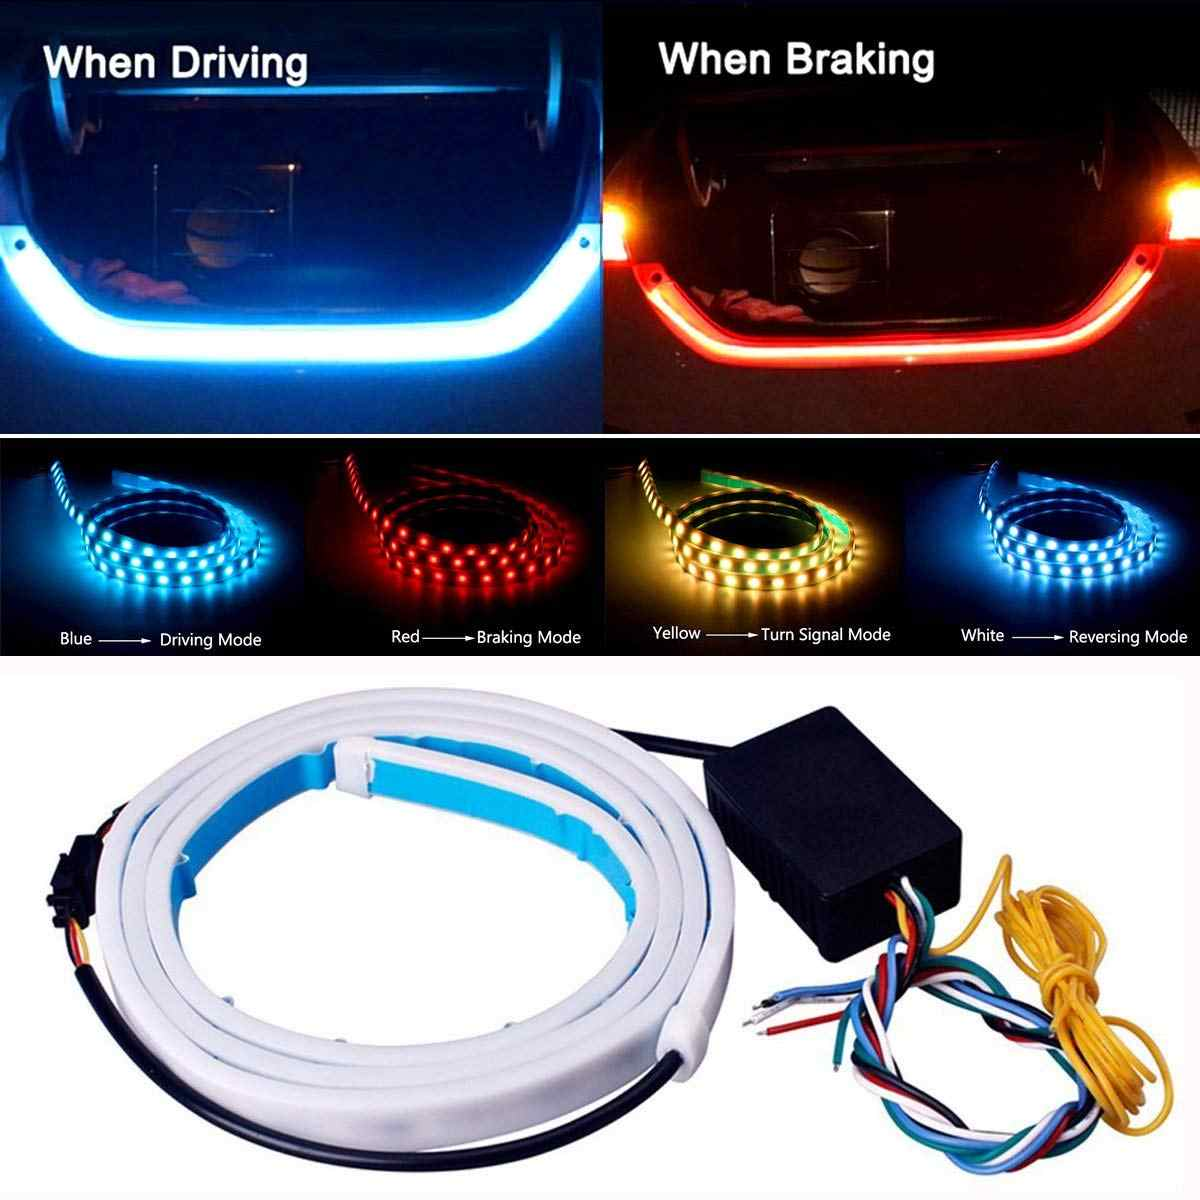 Amber Turn Signal Flow led trunk Strip light Tailgate luggage 12V Car Rear Lamp Dynamic Streamer Floating led strip